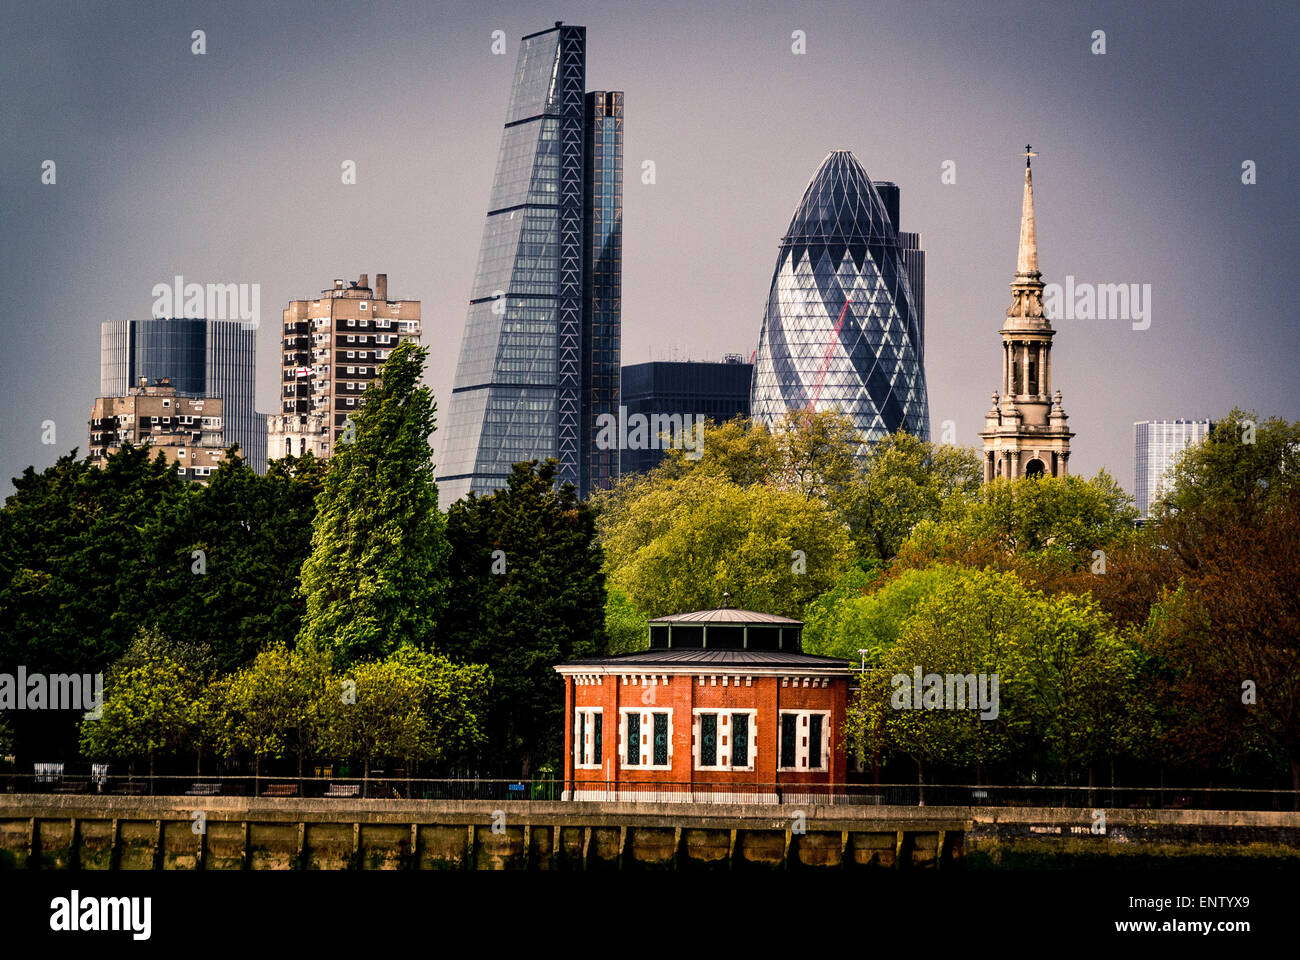 The Gherkin and Cheese Grater buildings from south side of river Thames, Air shaft to Rotherhithe Tunnel - Stock Image